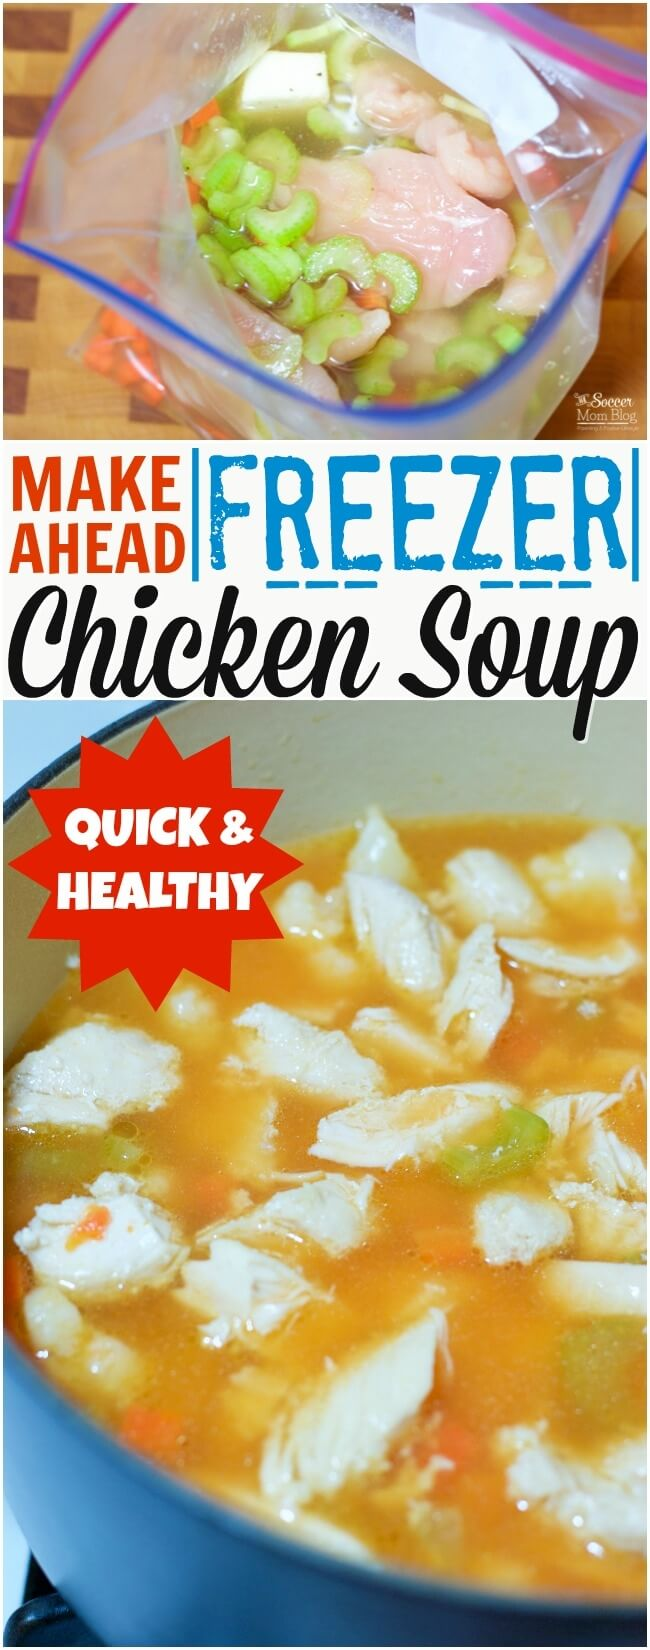 Easy 5 Minute Meal Prep Chicken Soup